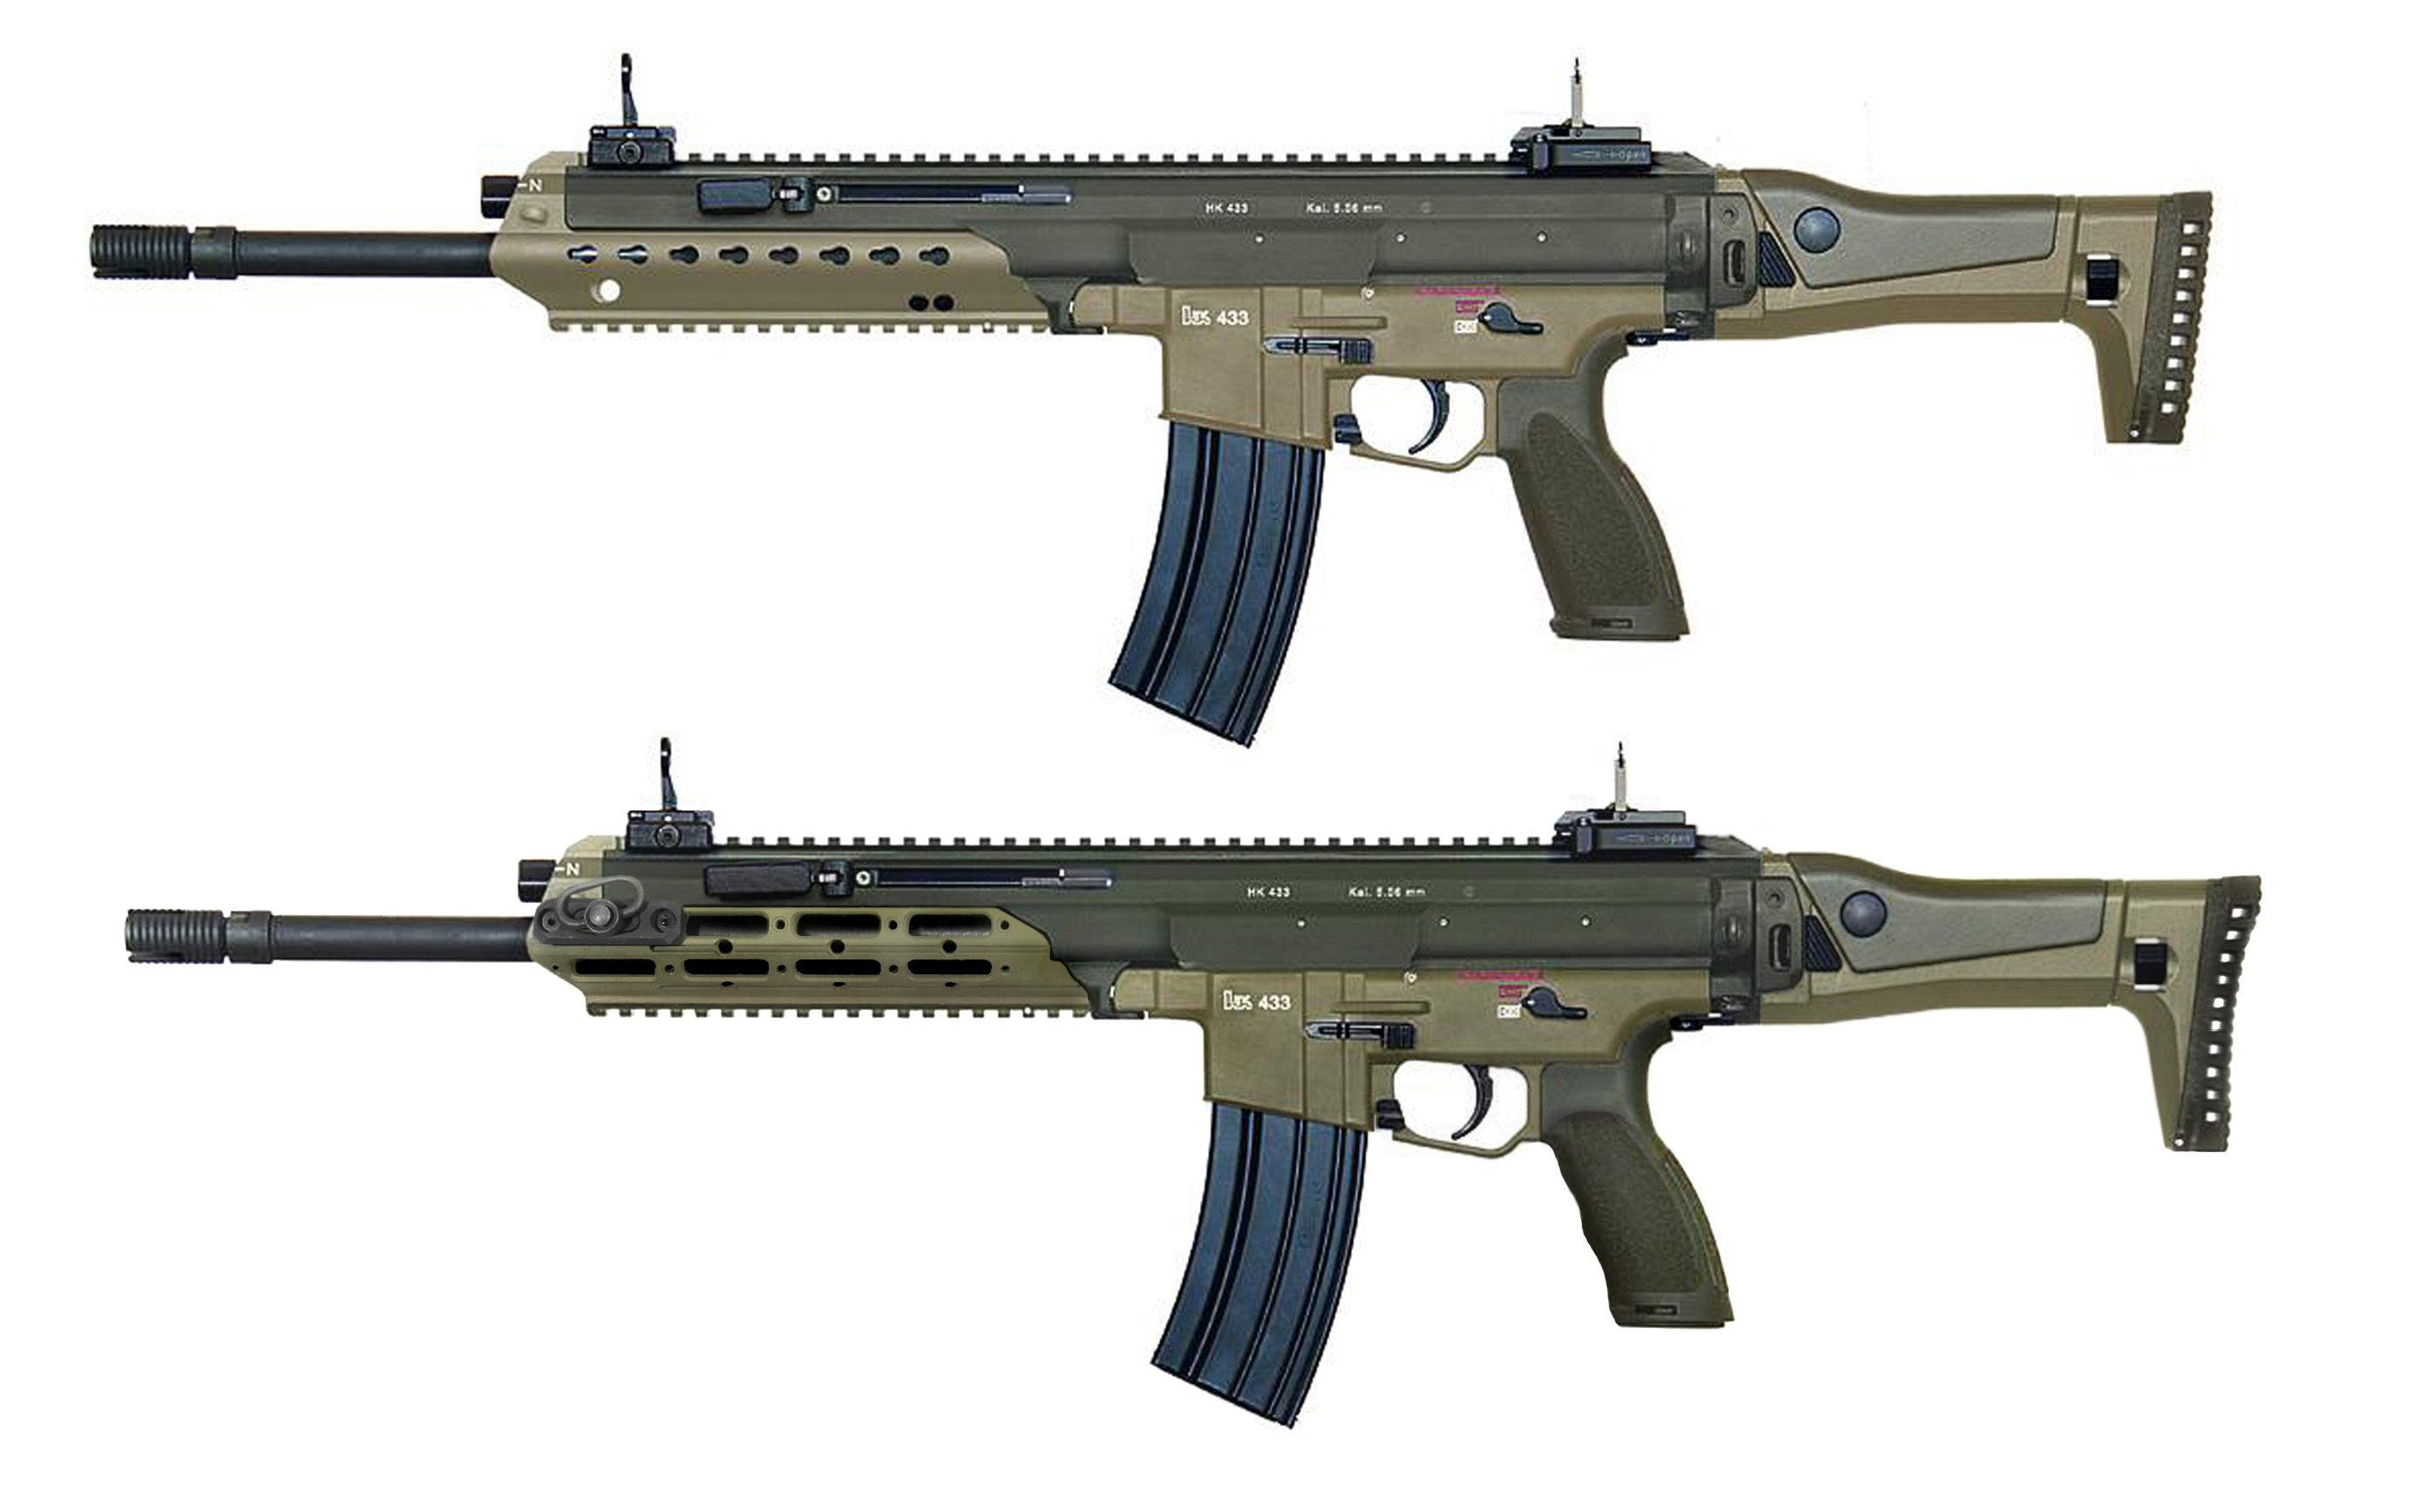 HK433 - The new assault rifle from HK-untitled-4_edited-1.jpg